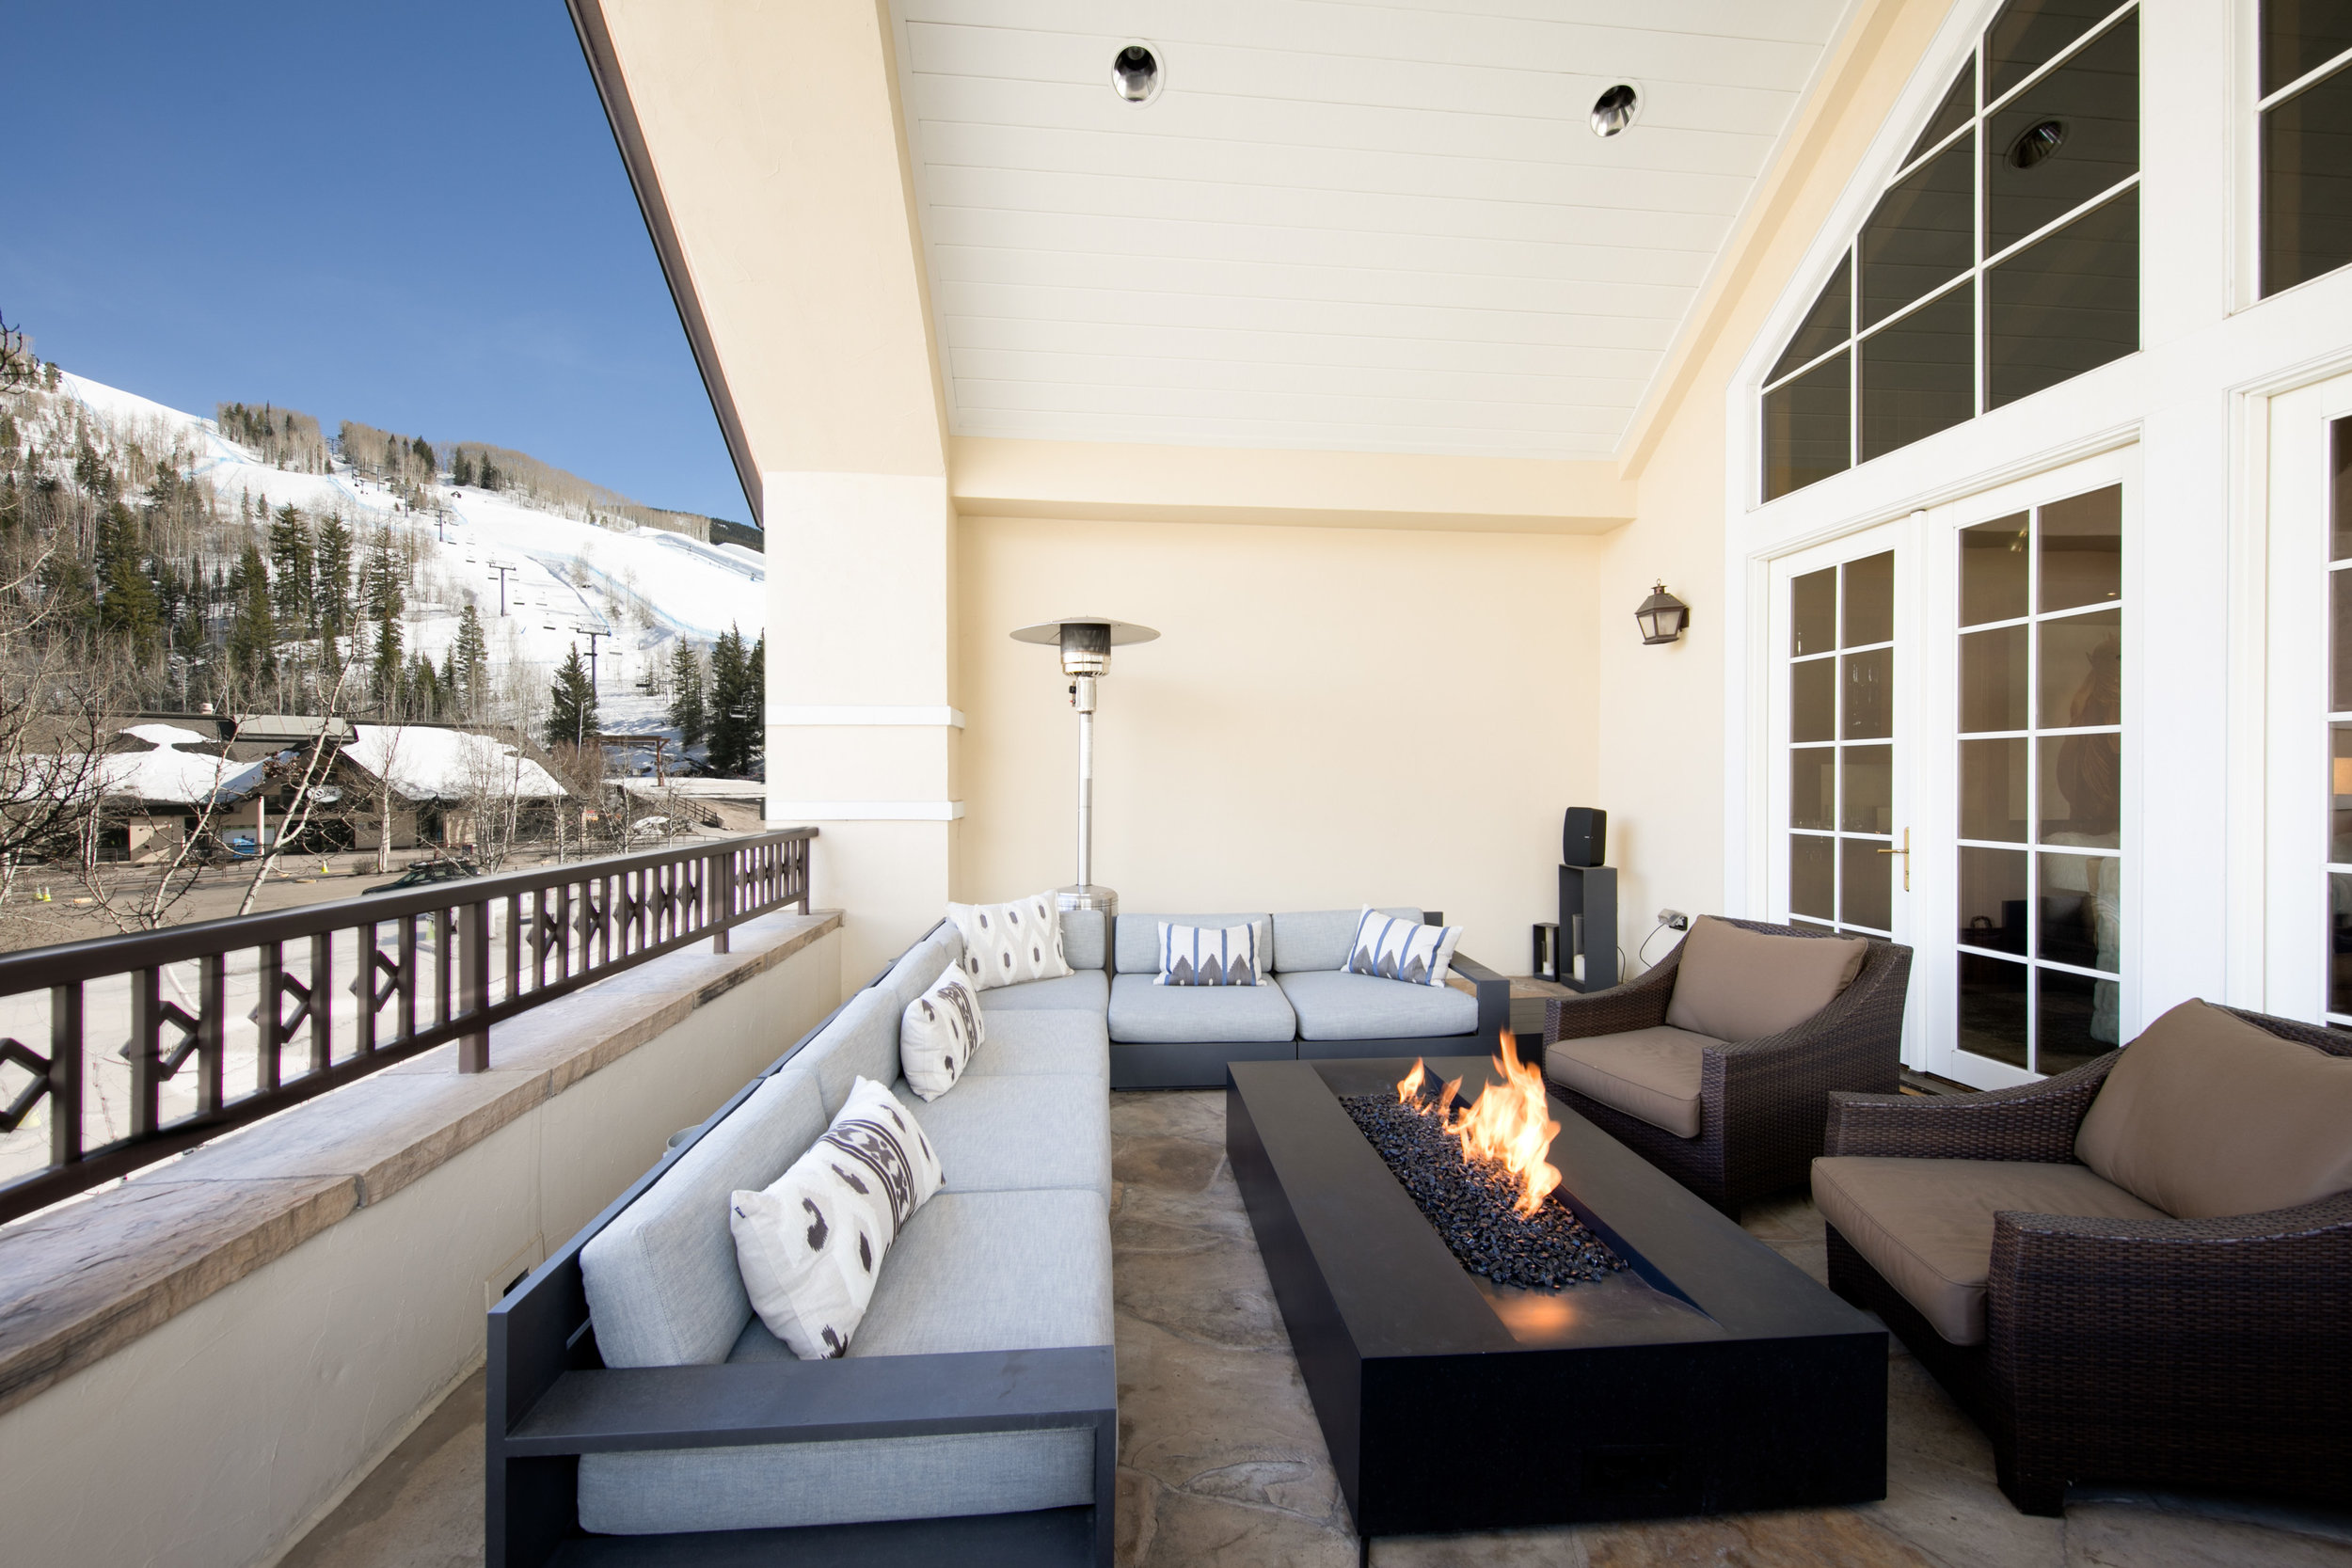 05-Vail-Real-Estate-Photographer-Toni-Axelrod.jpg